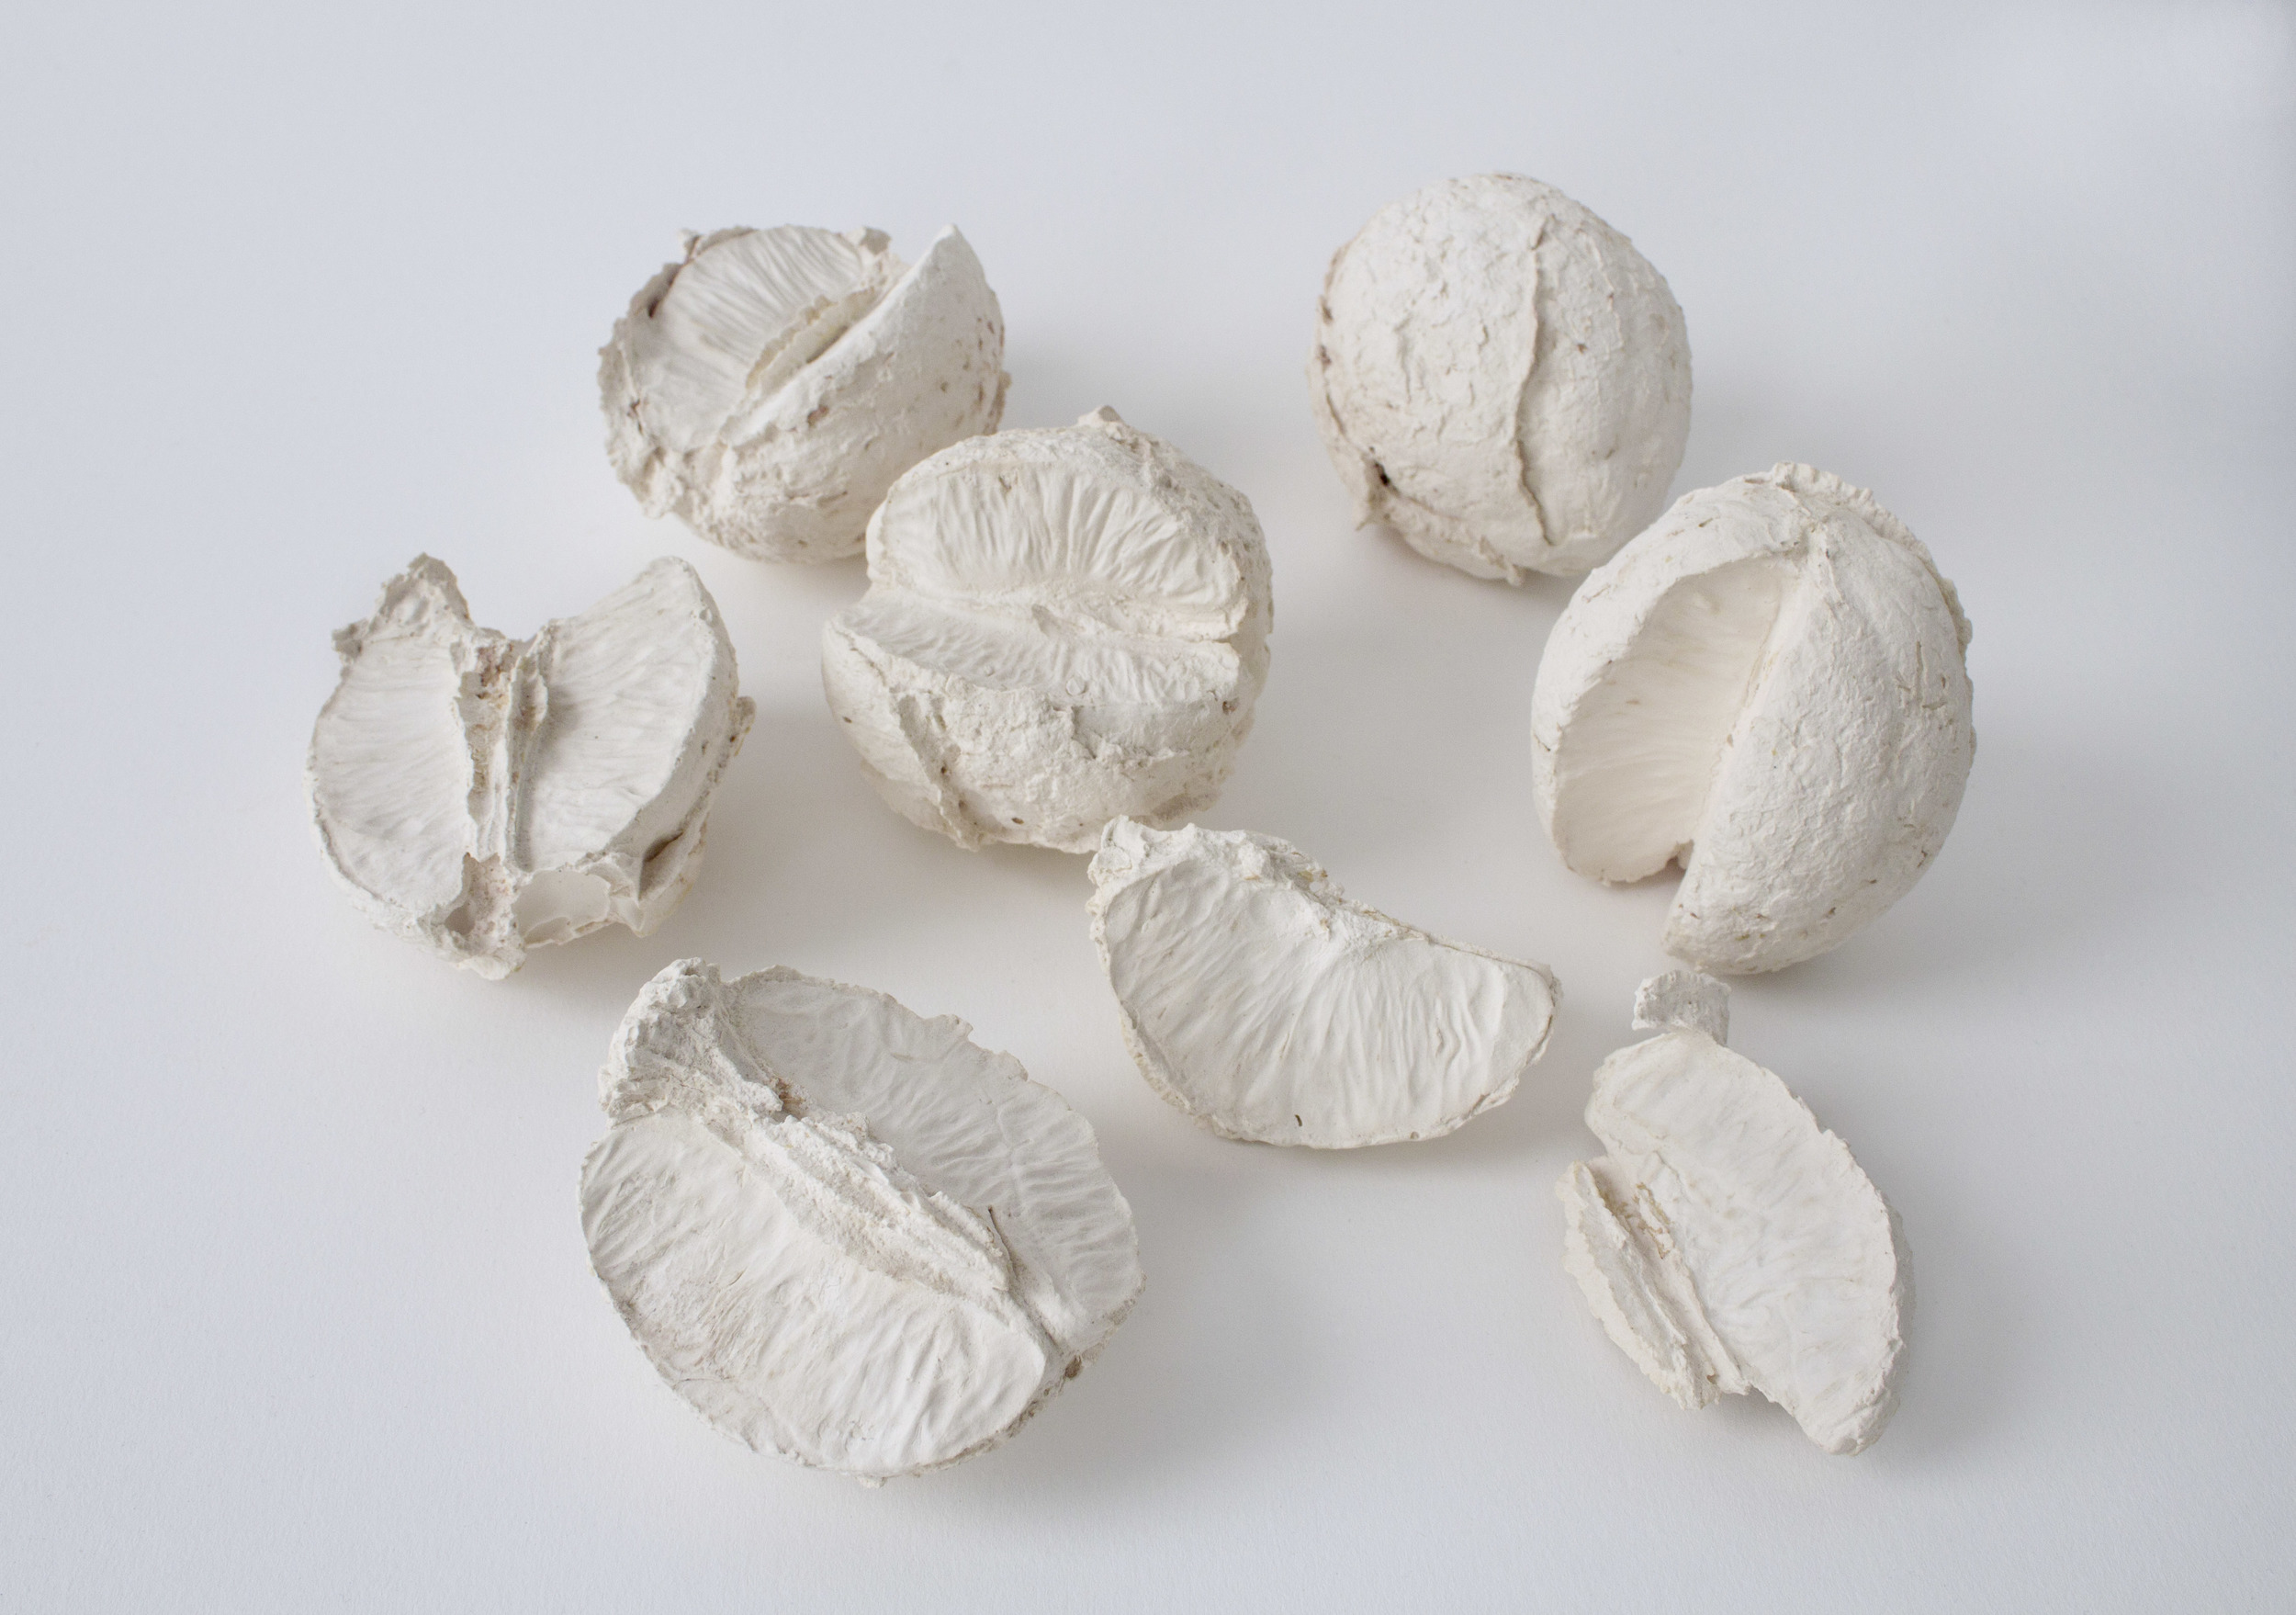 Untitled (oranges) , 2013  Plaster  7 x 8 x 3 in (group)